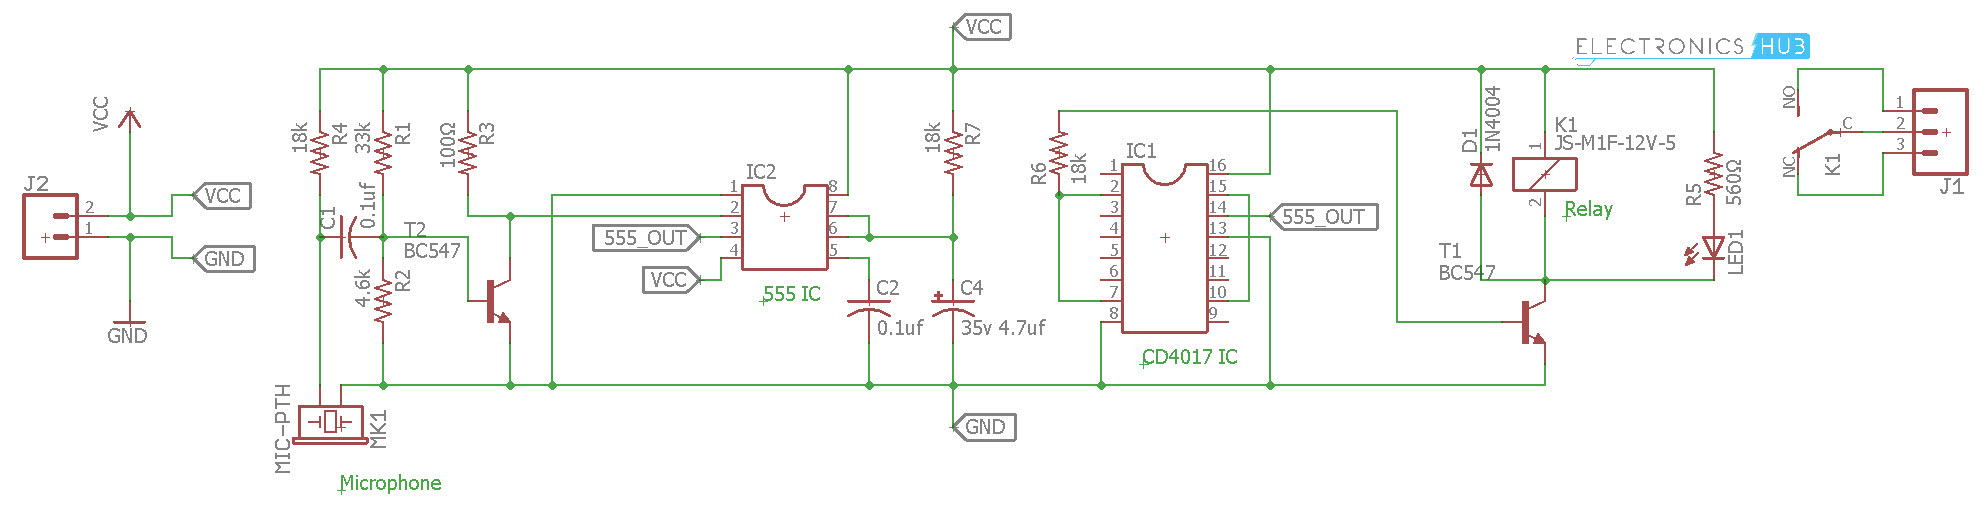 Clap Switch Circuit For Devices Working And Applications Pwm Controller With 555 Timer Chip Using 4017 Diagram